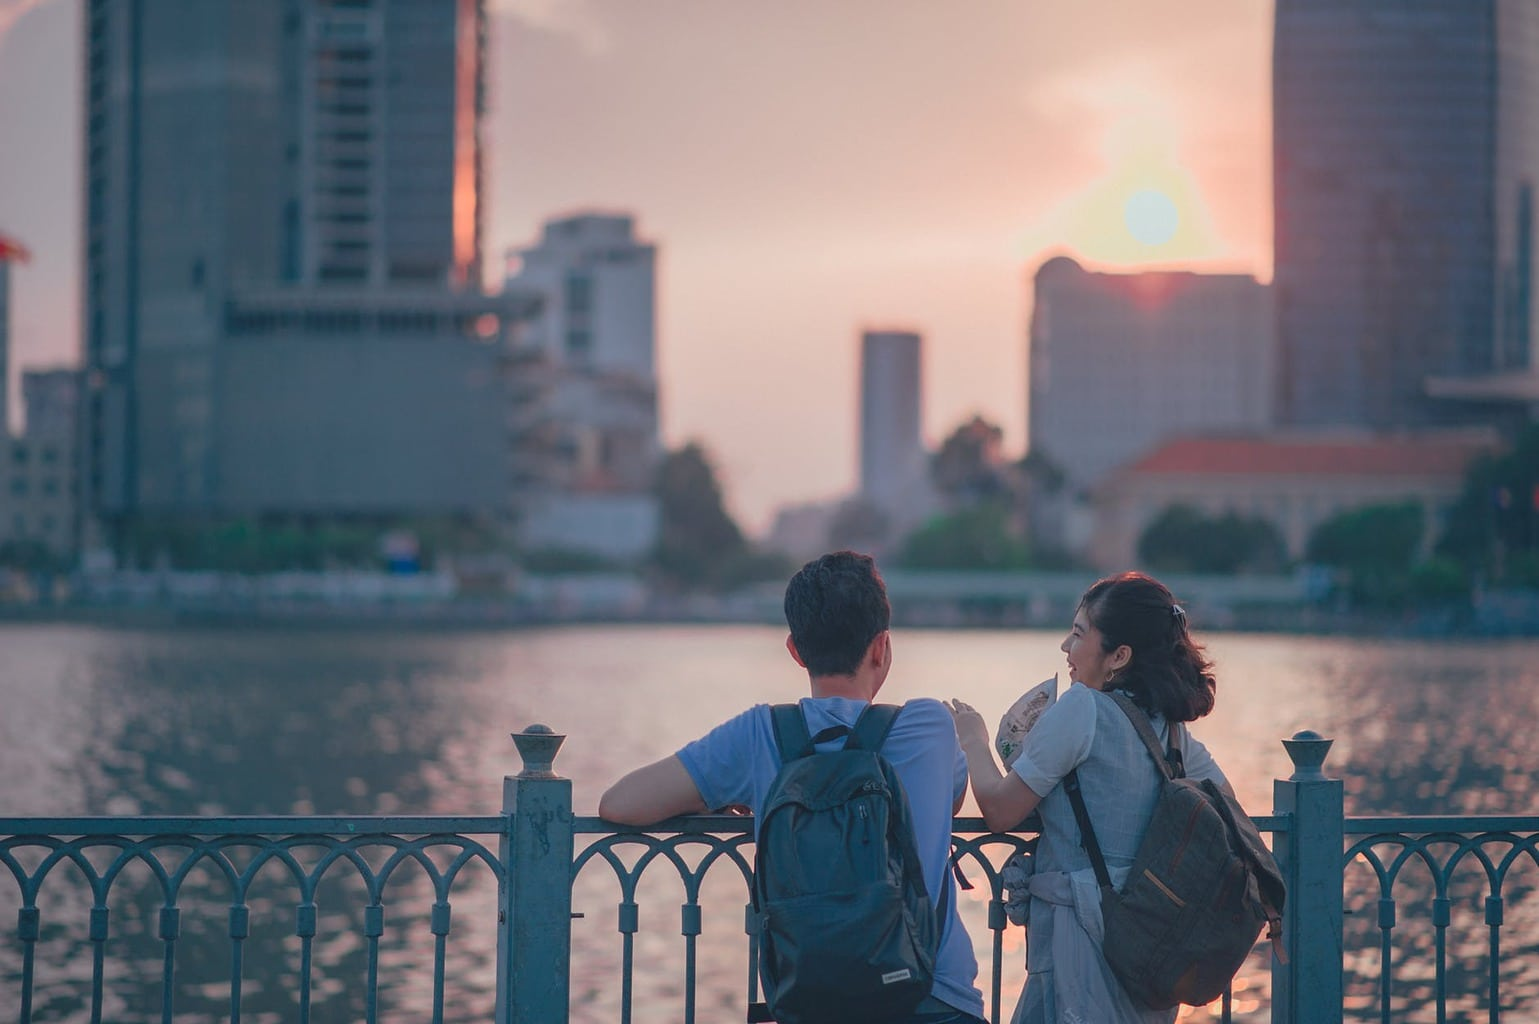 Boy and girl wearing backpacks having a conversation overlooking a river at sunset